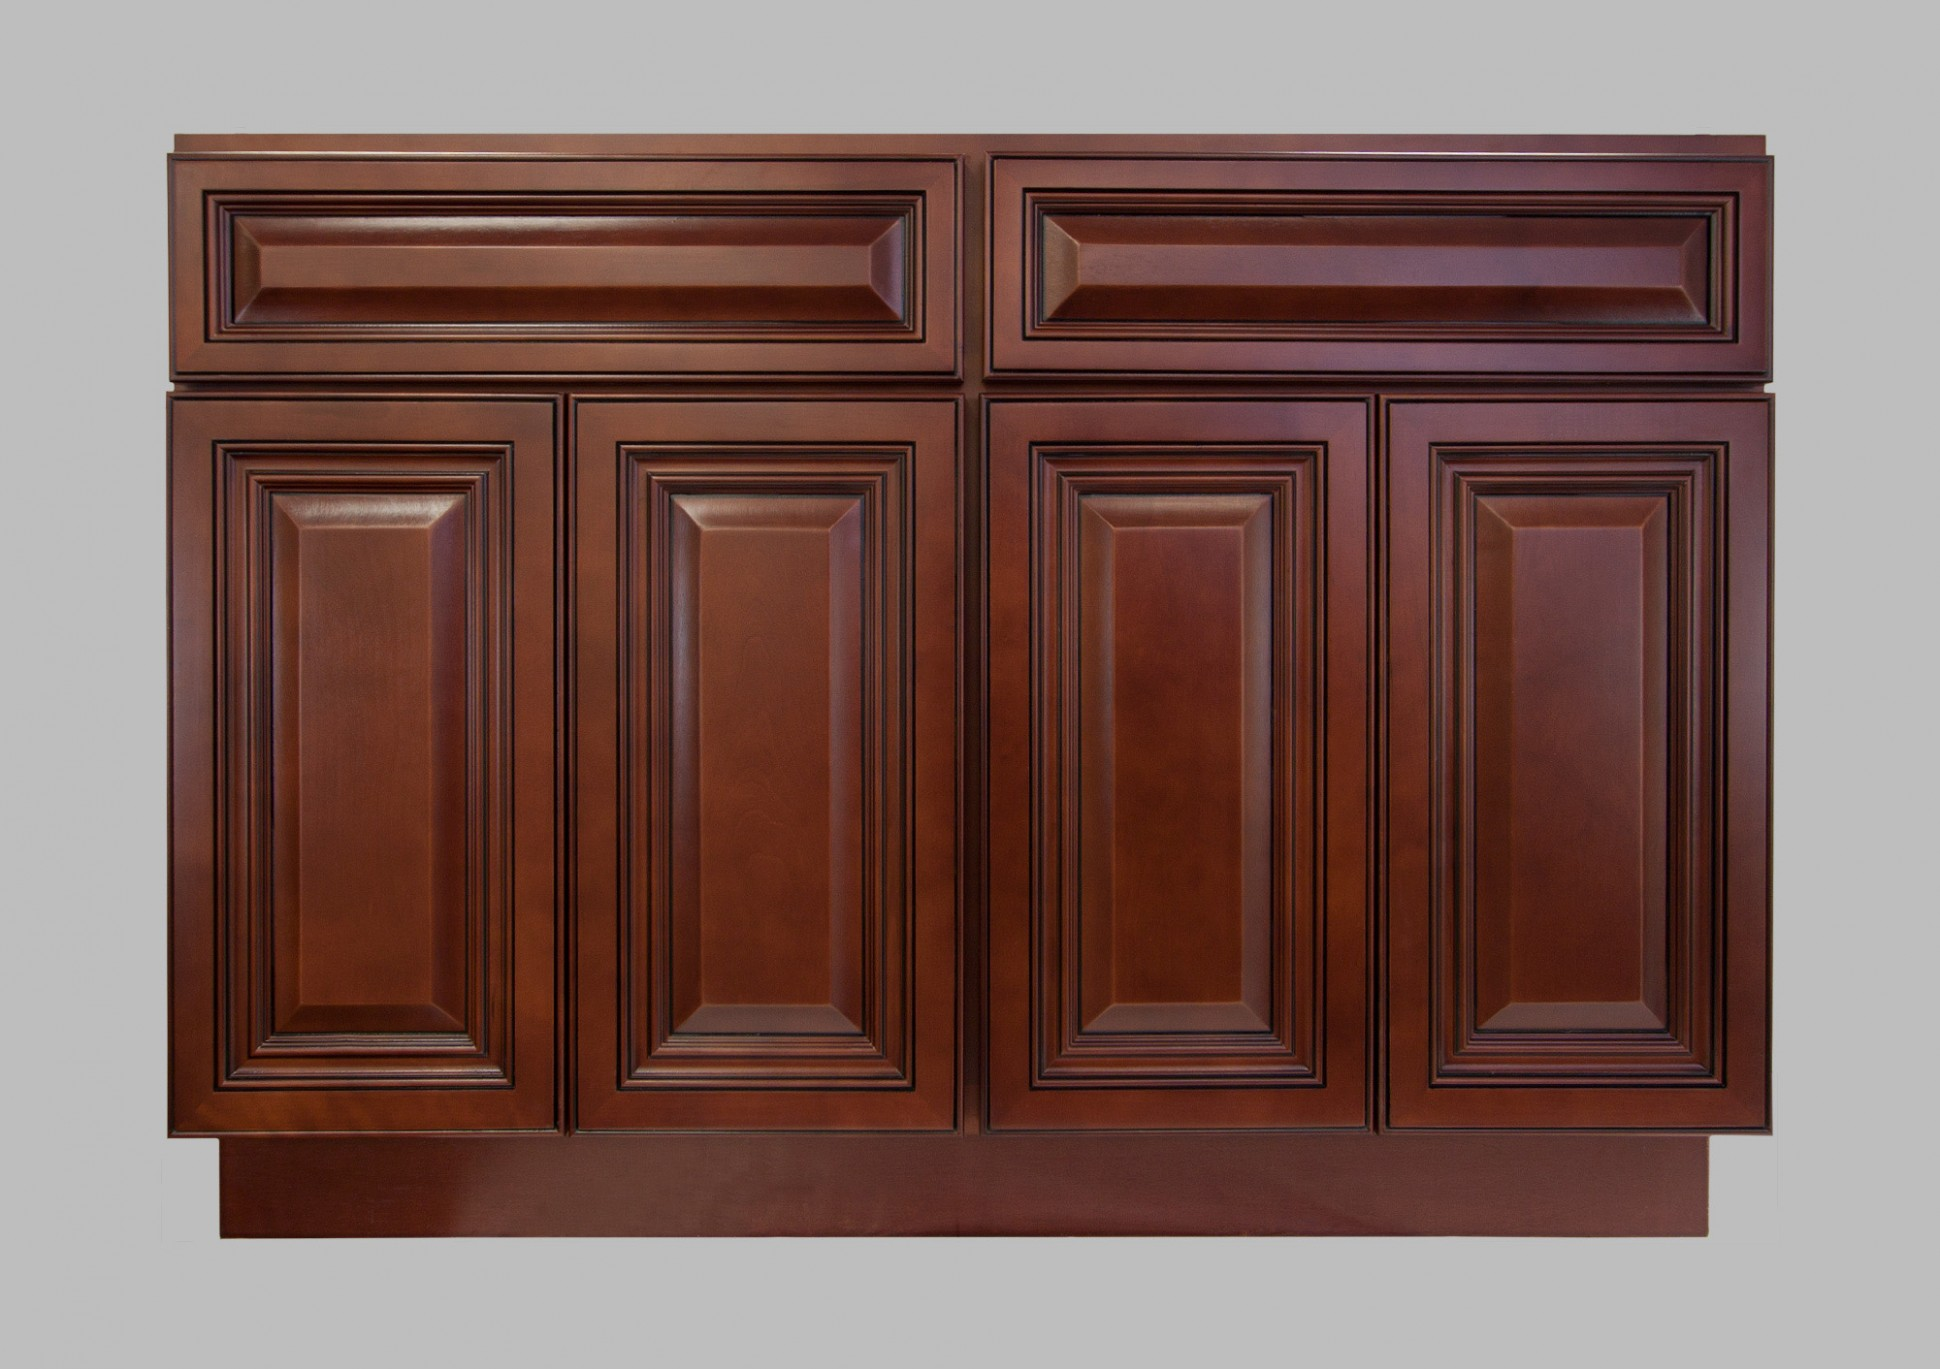 LessCare > Kitchen > Cabinetry > Cherryville > LCB11Cherryville  - Four Door Kitchen Cabinet